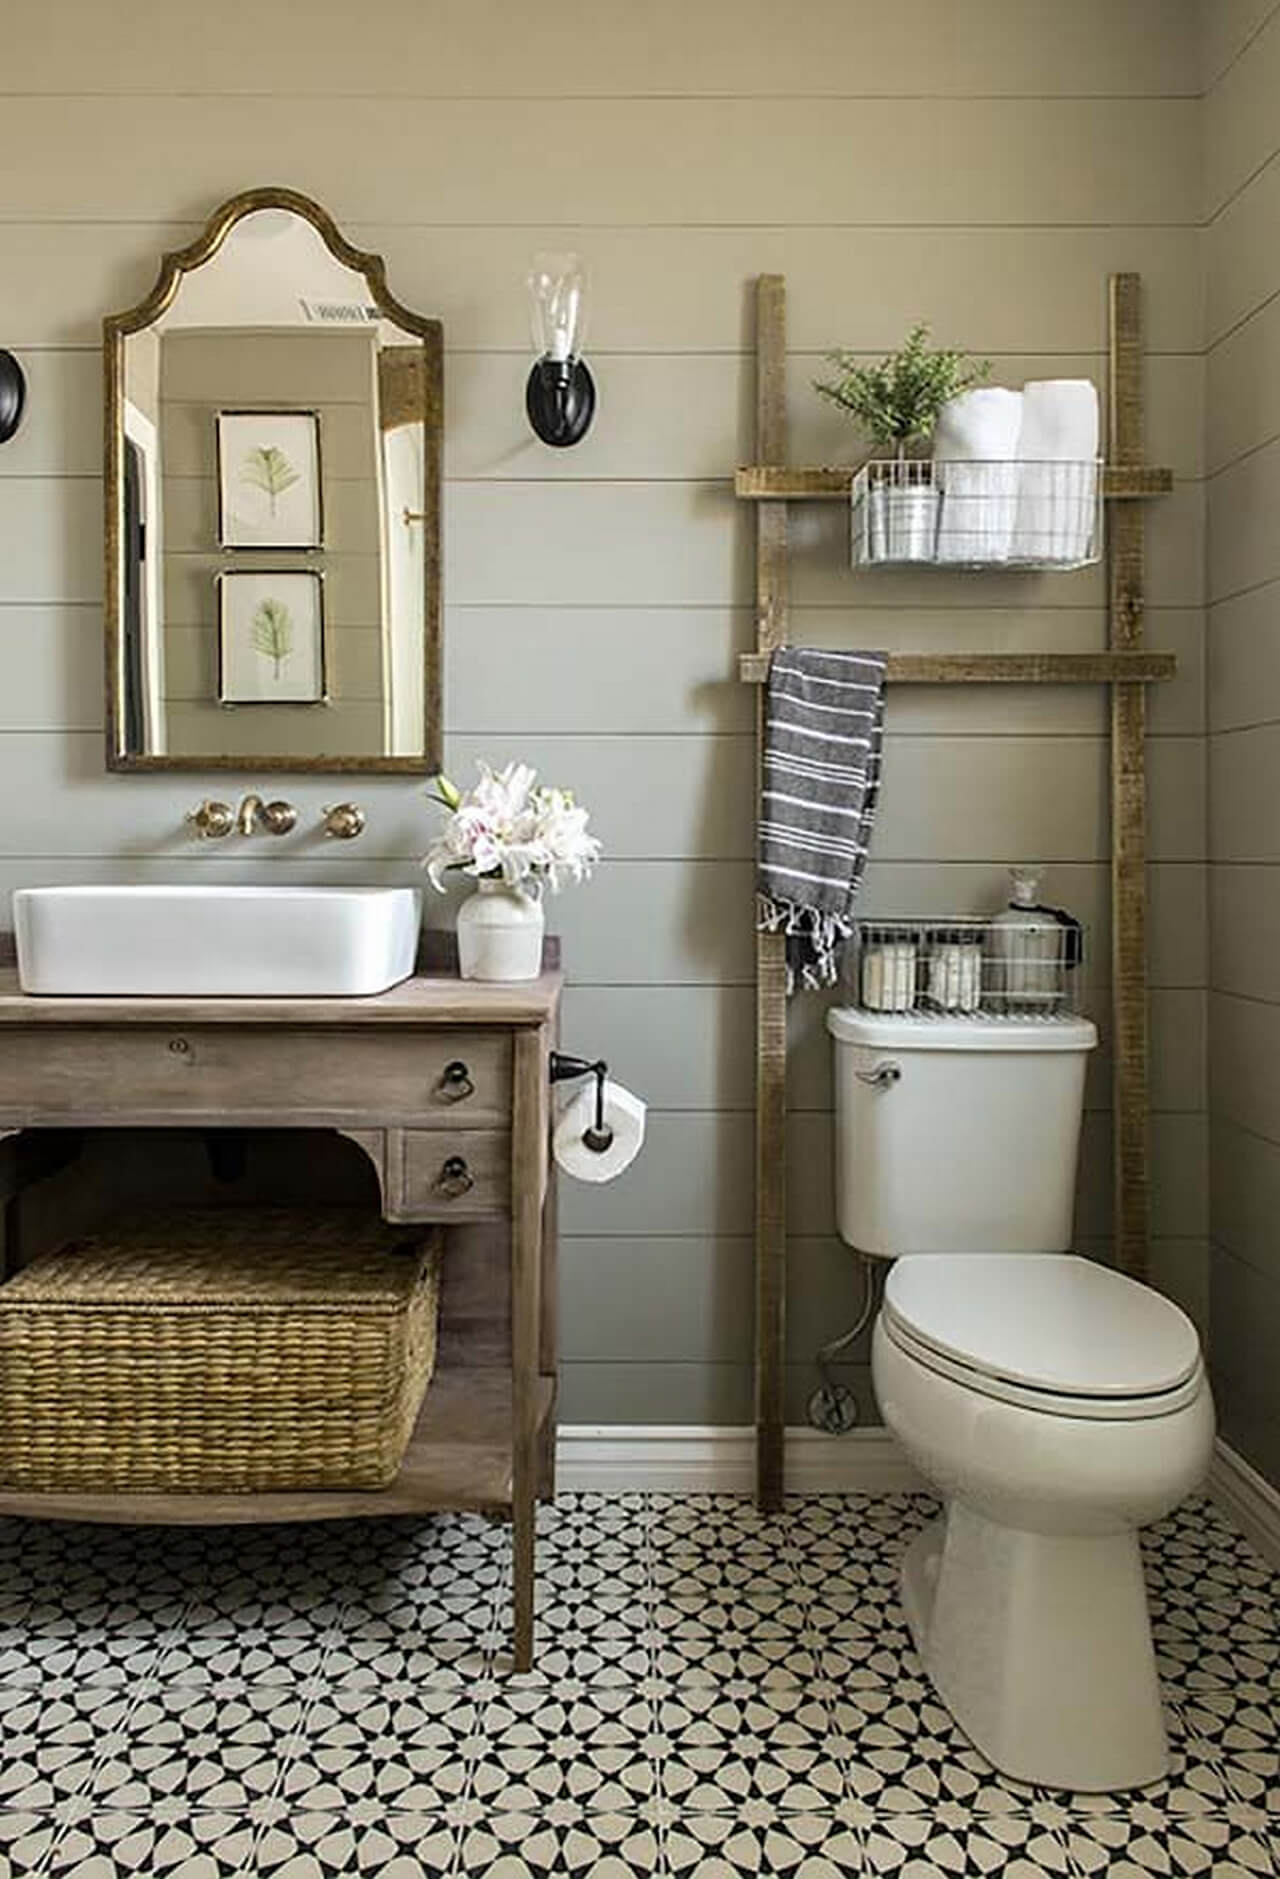 32 Best Small Bathroom Design Ideas and Decorations for 2019